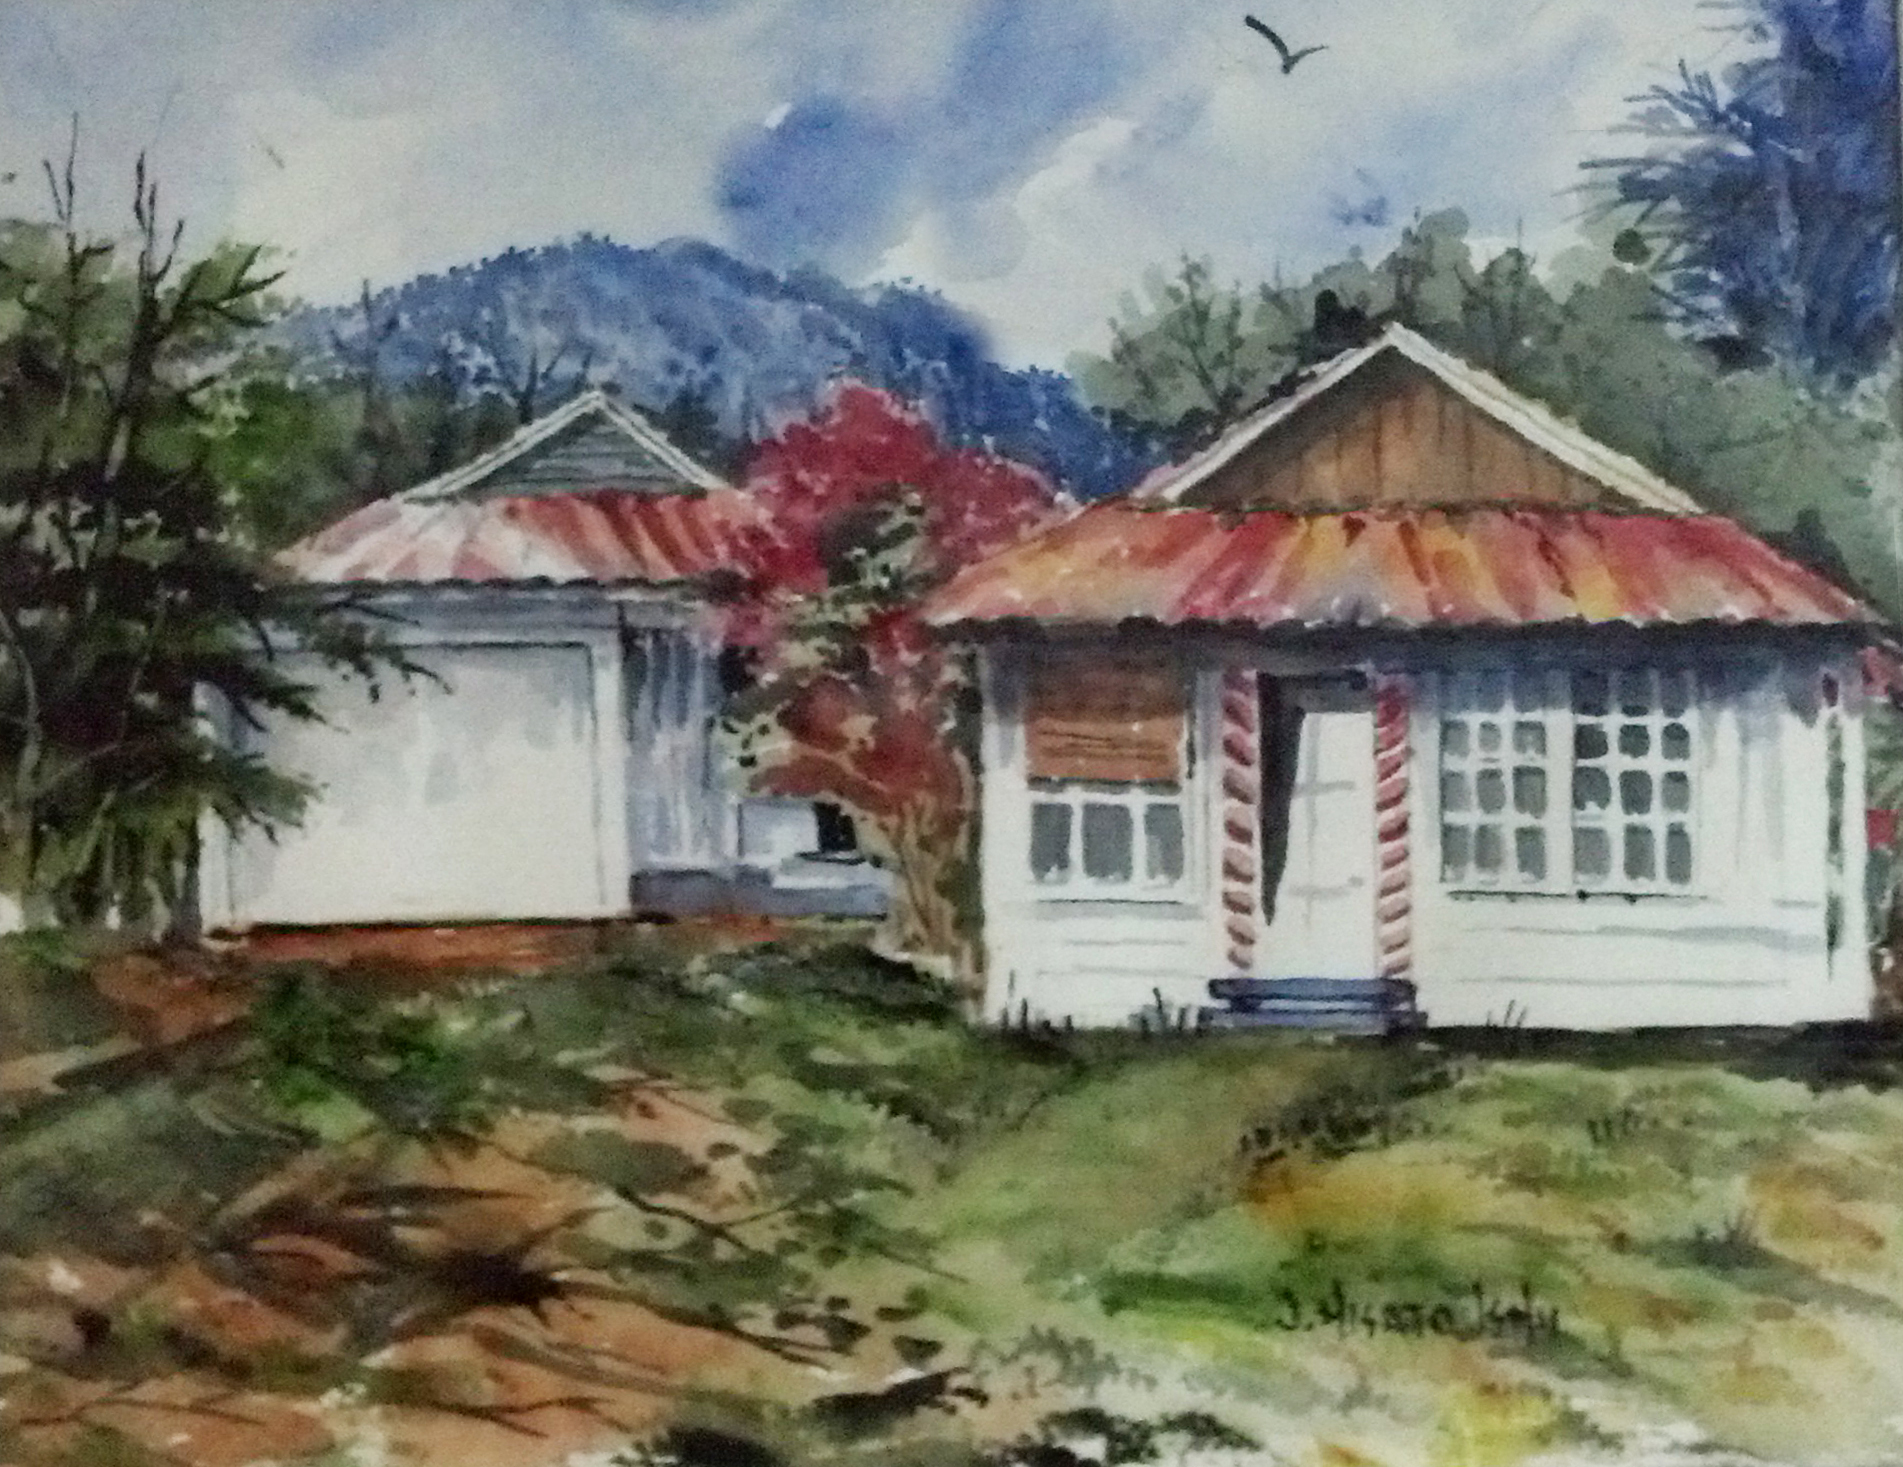 Carolyn's Uncle Jim captured the old family home in this painting.